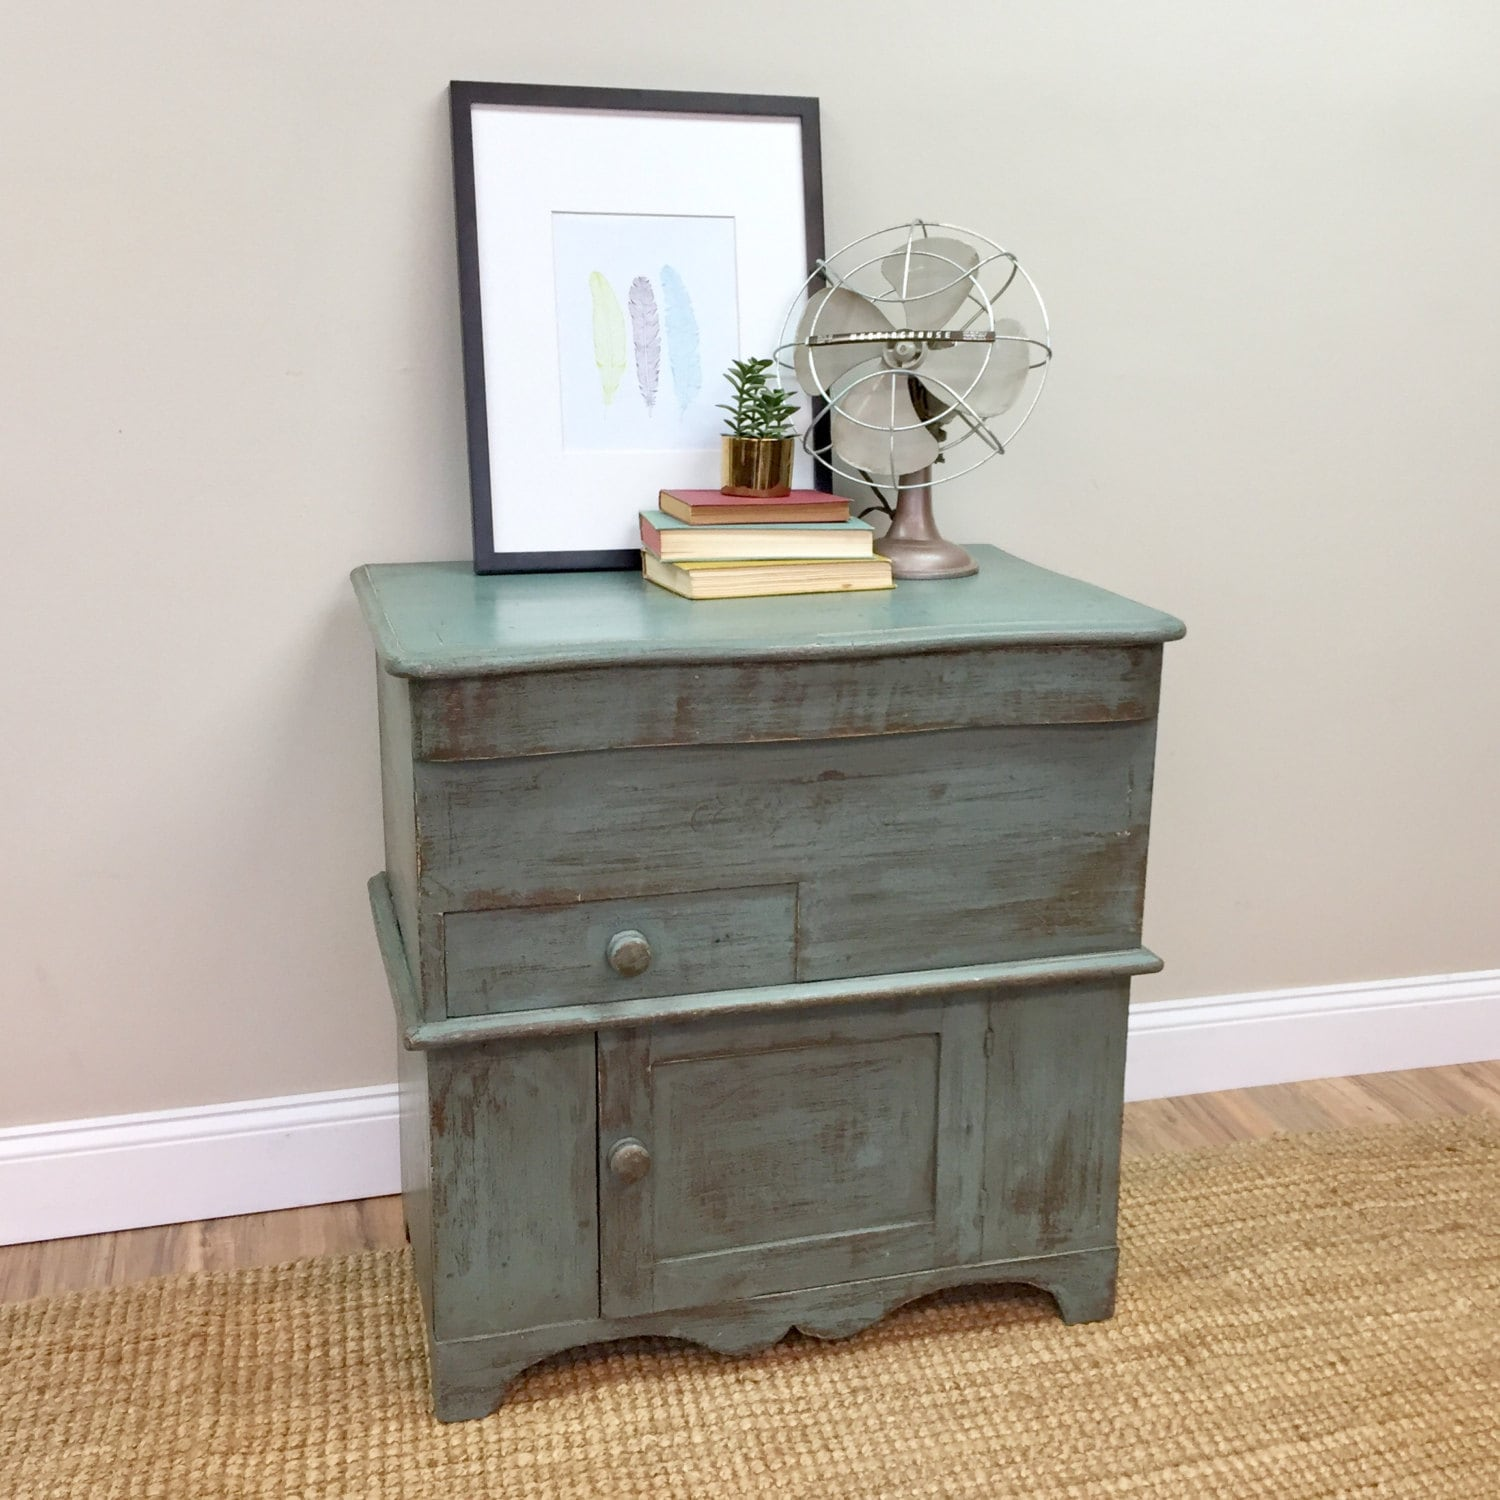 Antique Storage Cabinet - Primitive Cabinet - Bathroom Cupboard - Farmhouse  Nightstand - Side Table with Storage - Small Storage Cabinet - Antique Storage Cabinet - Primitive Cabinet - Bathroom Cupboard